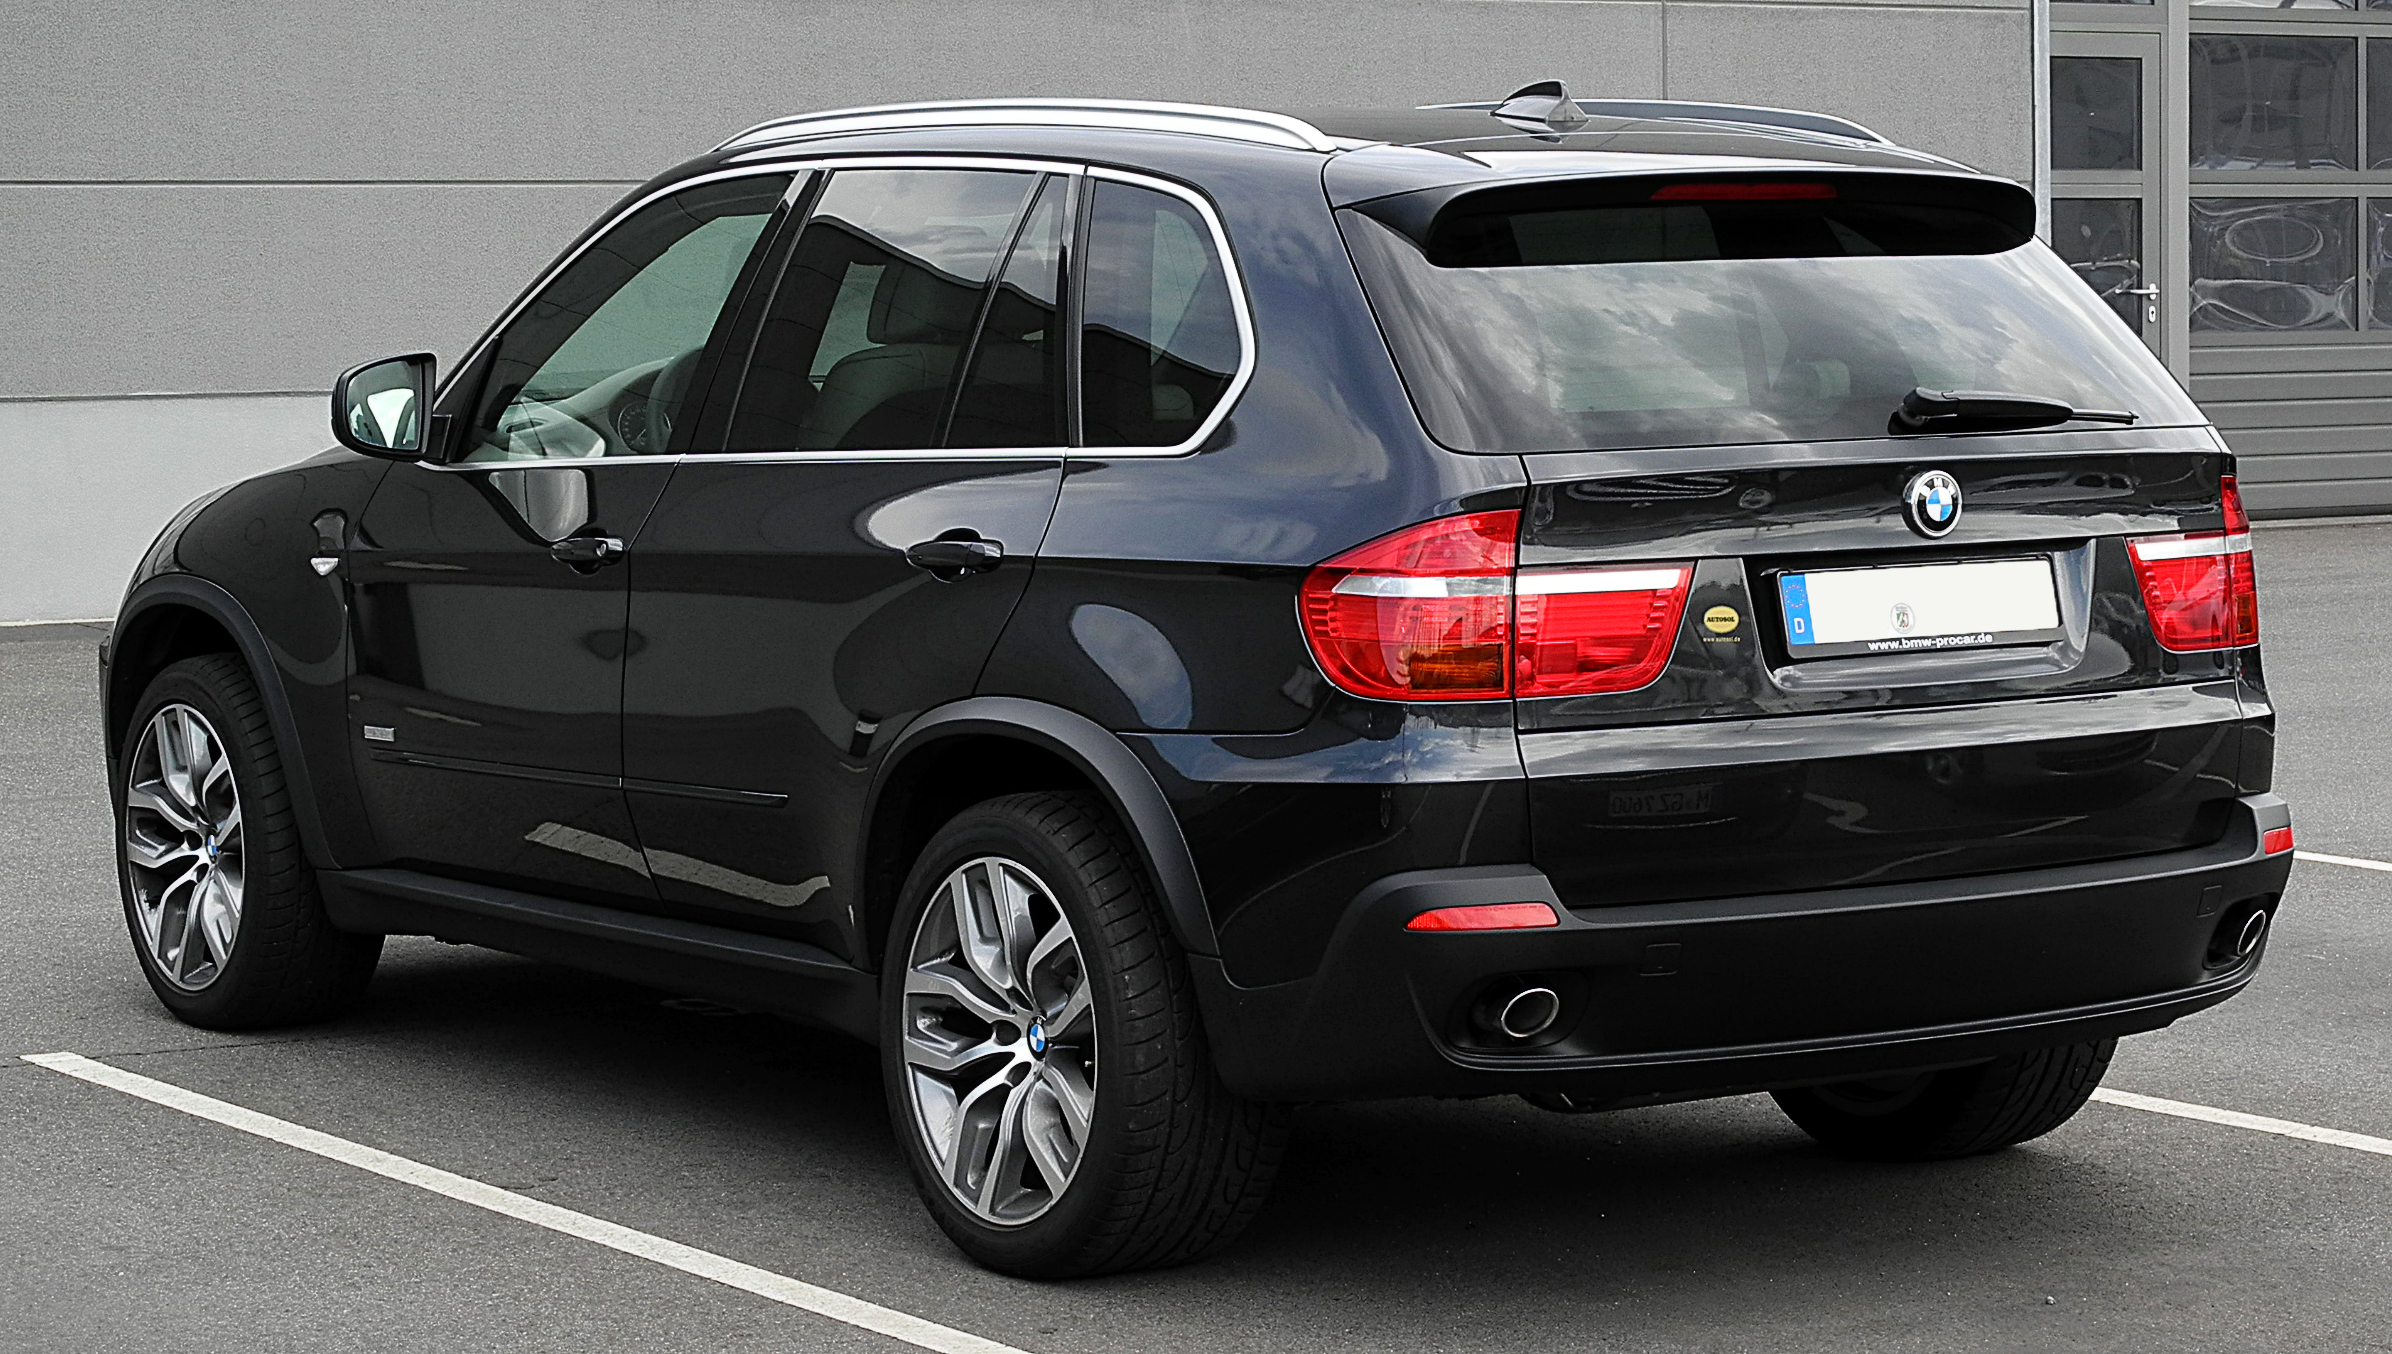 bmw x5 pictures #4